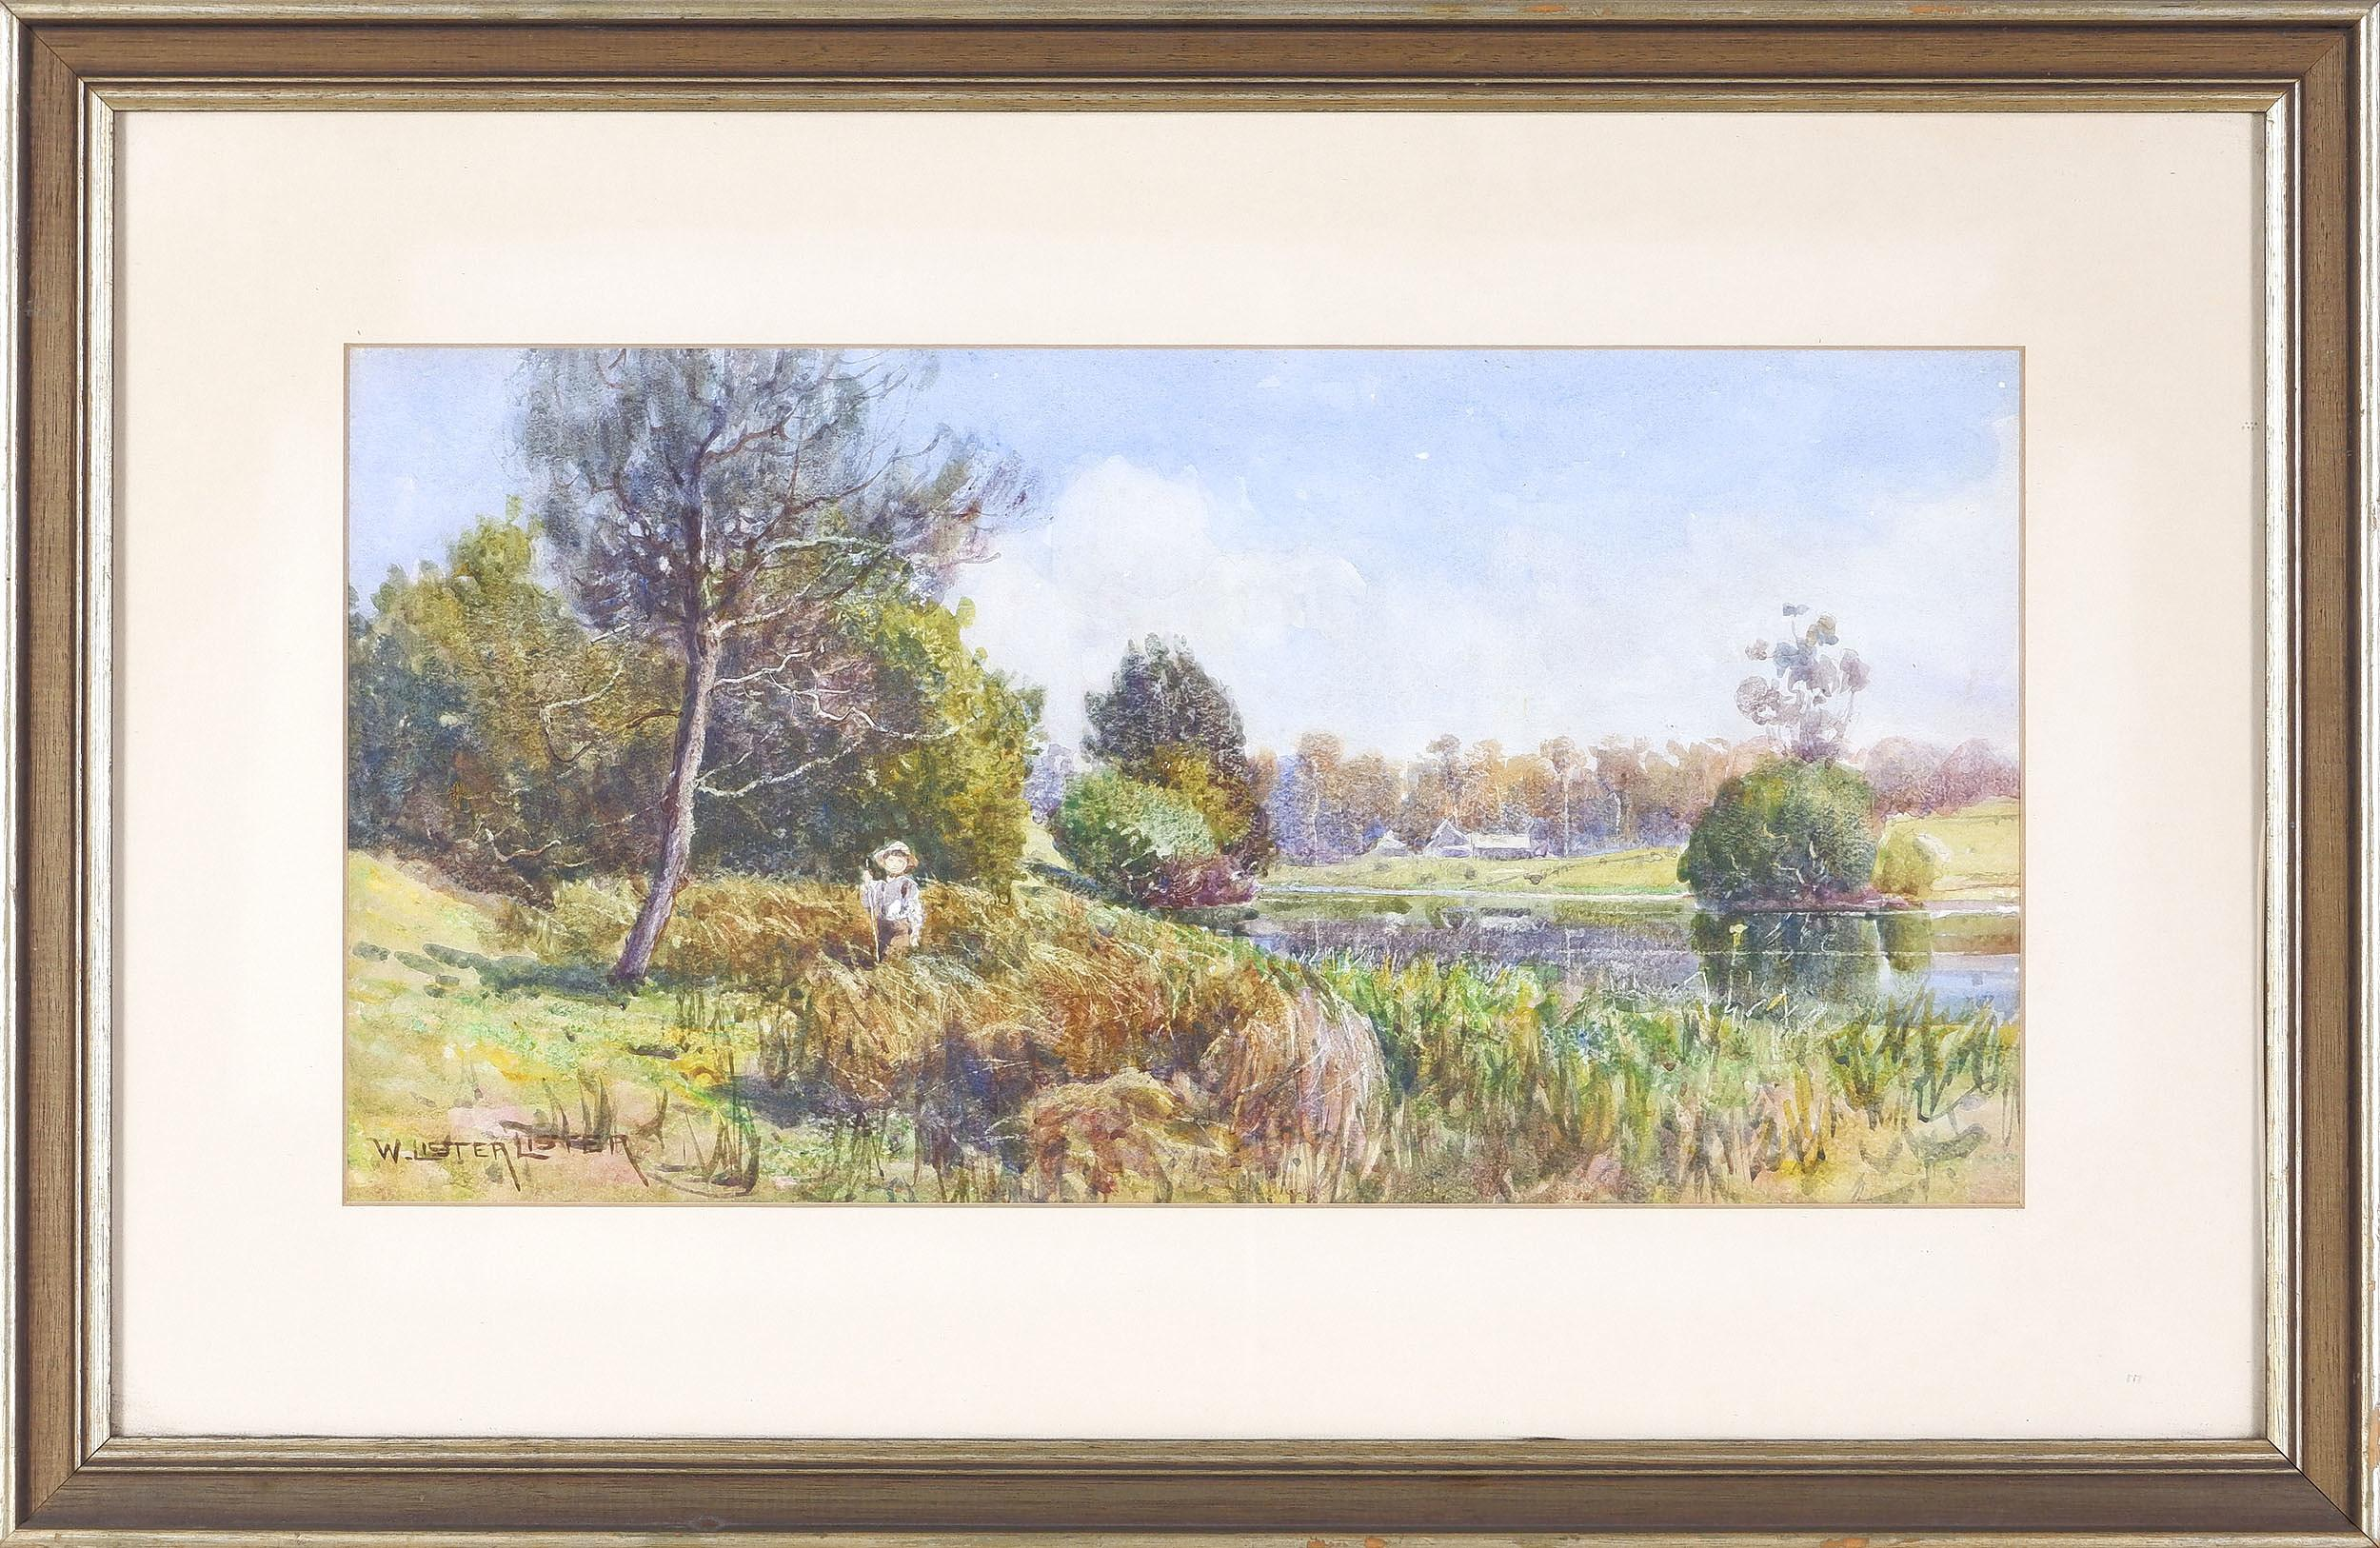 'William Lister Lister (1859-1943) Watercolour'